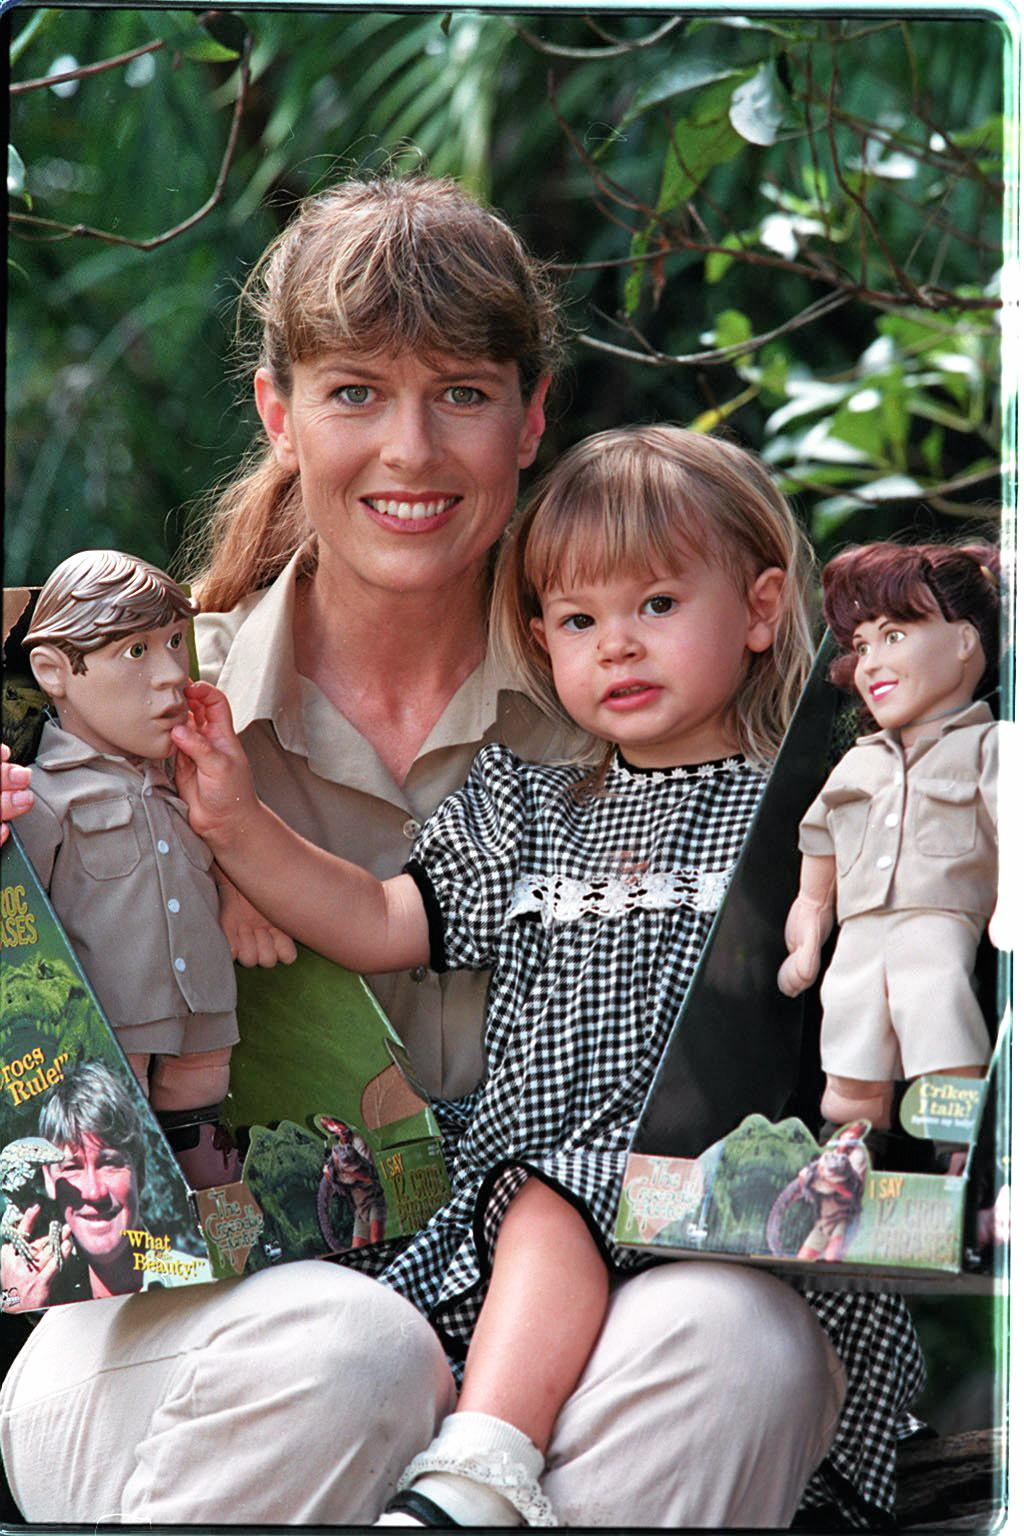 Terrie Bindi Irwin with some of their merchandise at Australia Zoo.